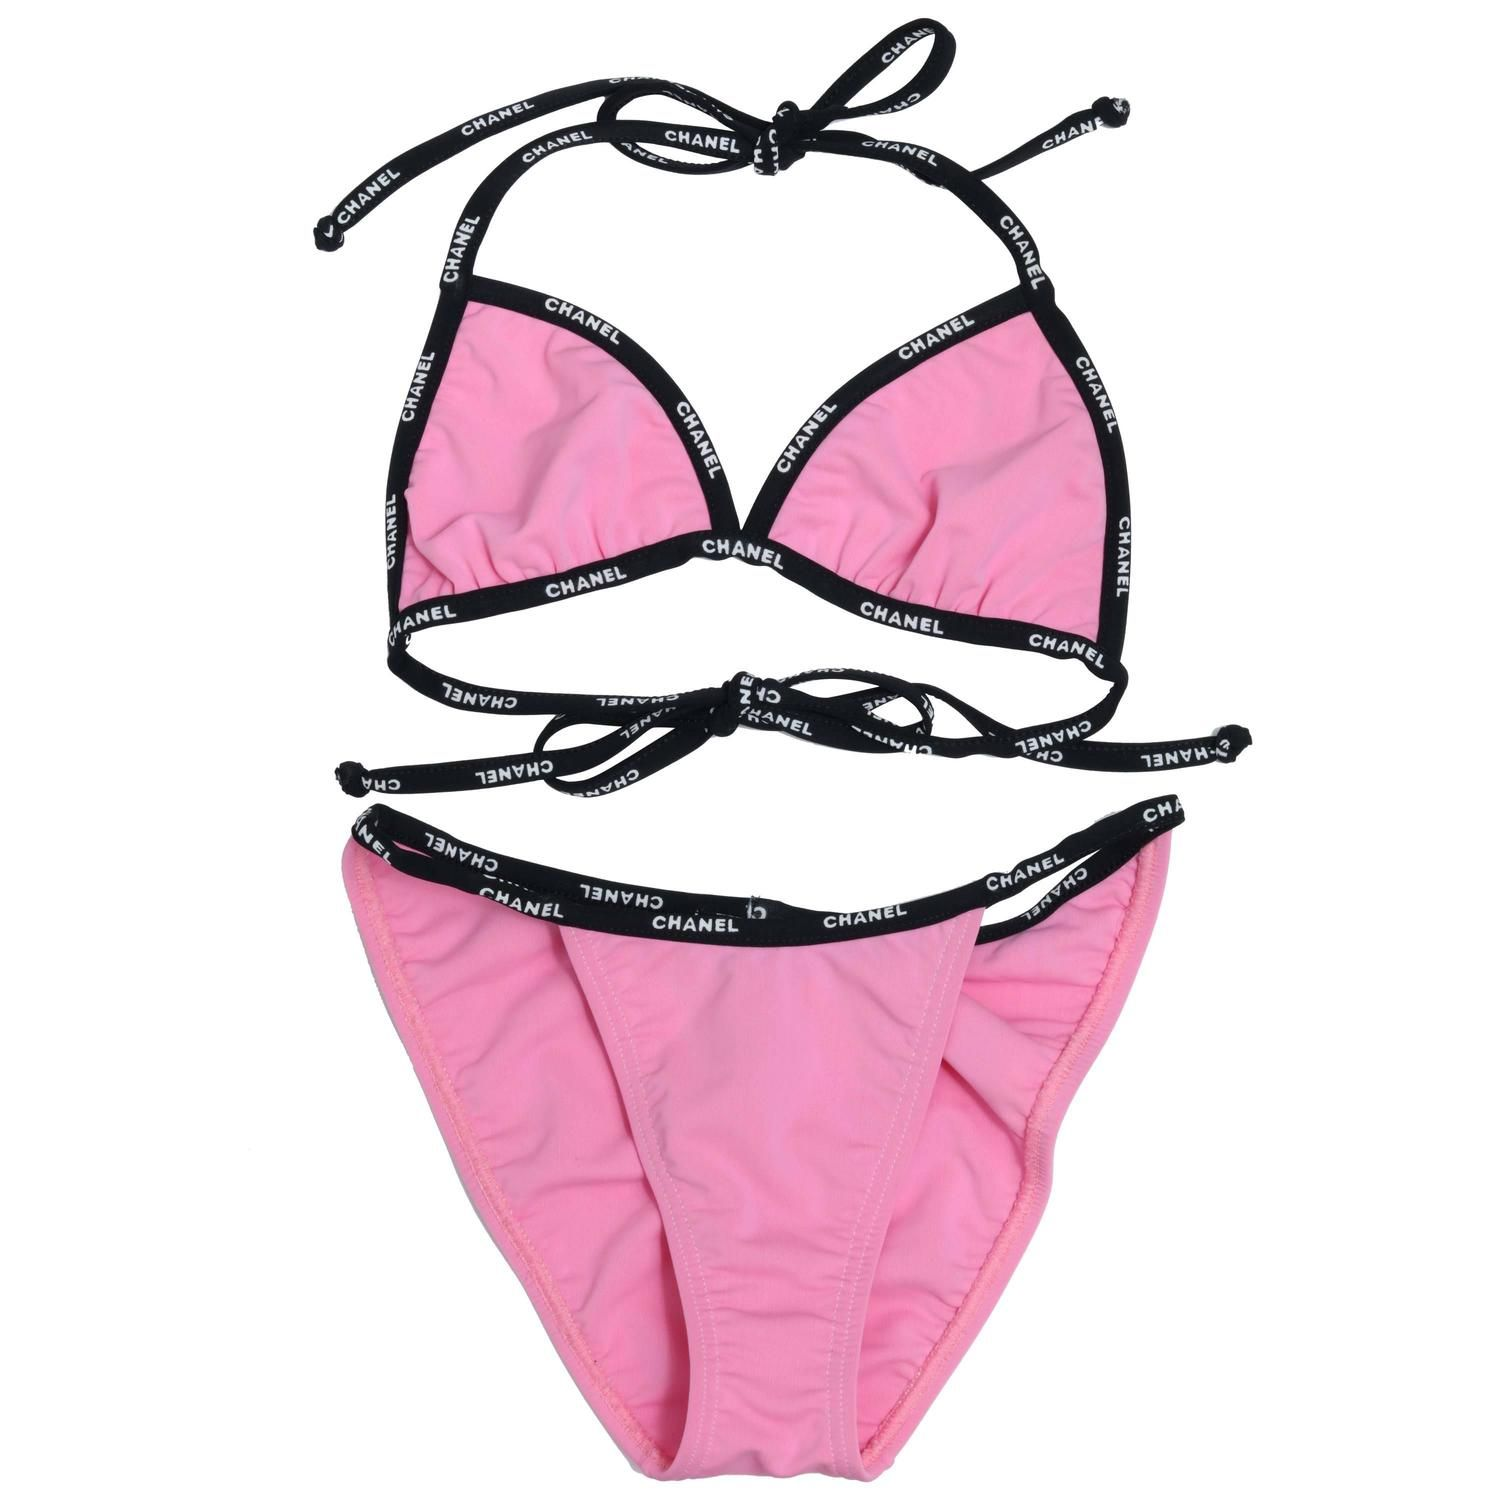 ee5c5f99ef622f Extremely Rare Chanel Pink Bikini with Logos | From a collection of rare  vintage…